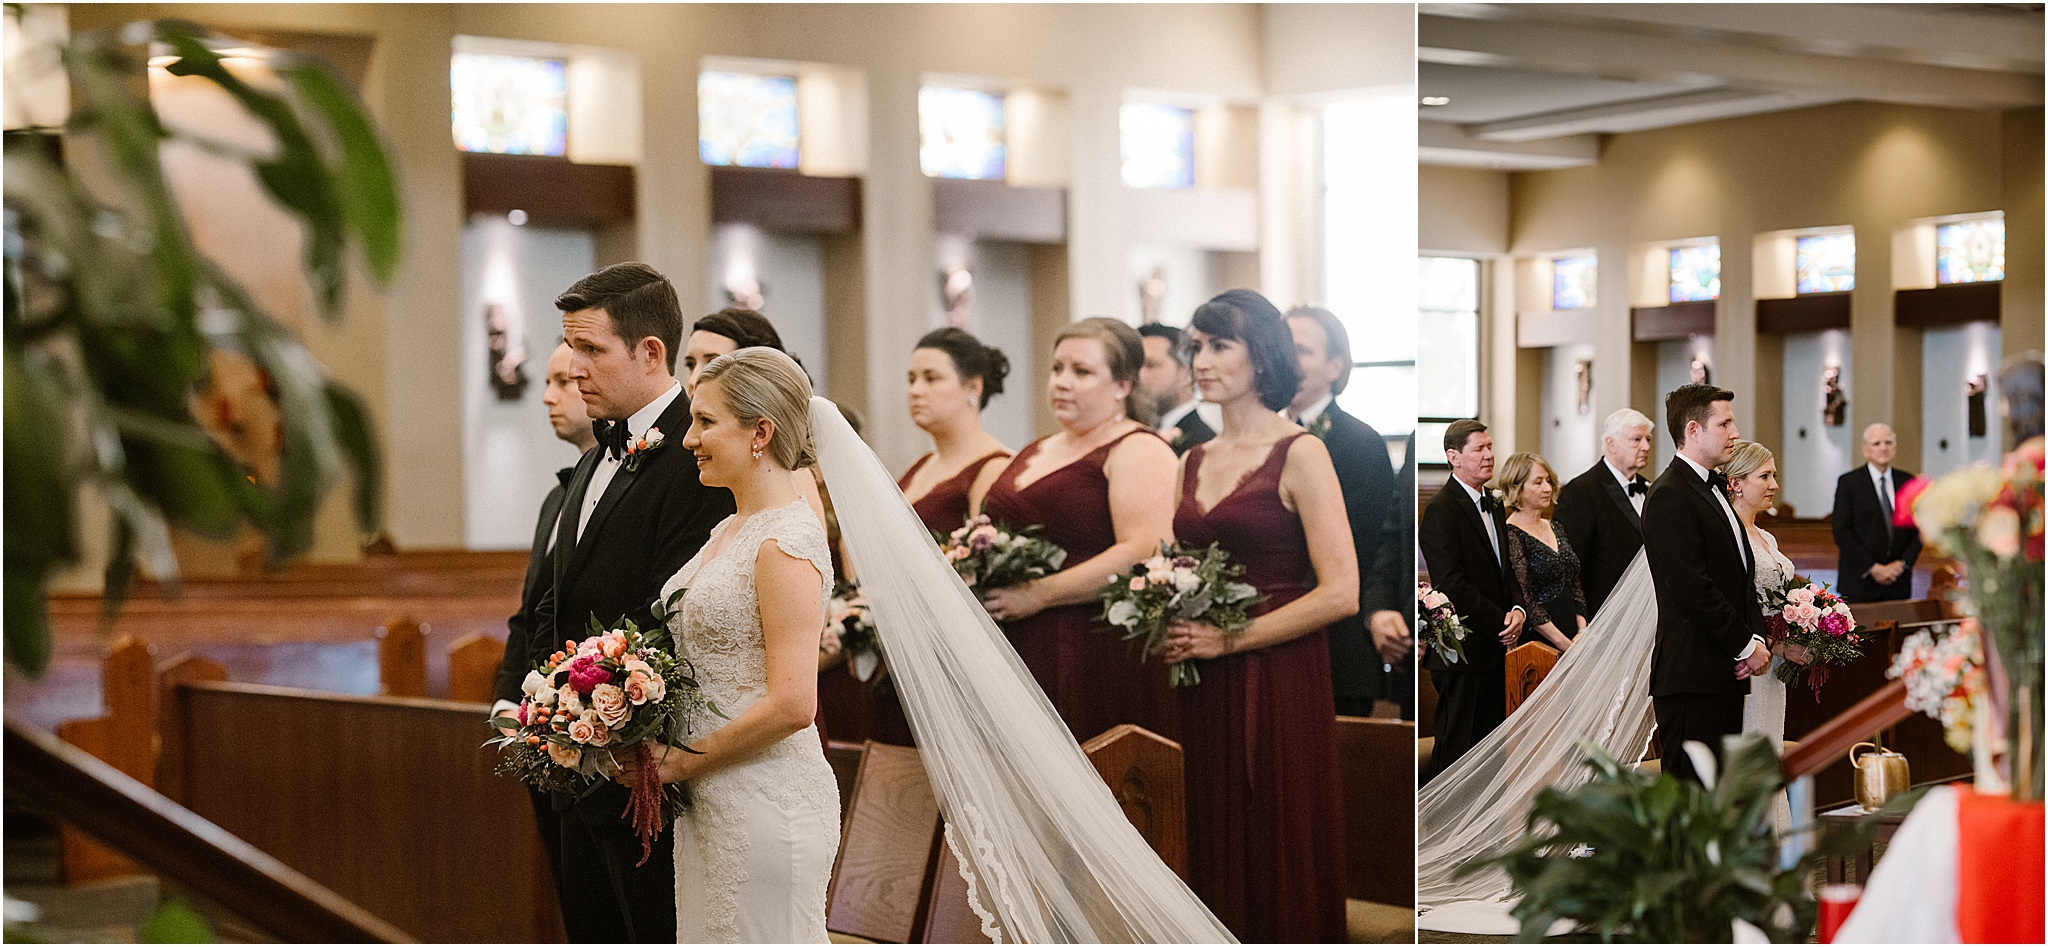 JENNA_JEROME_BLUE ROSE PHOTOGRAPHY_ABQ WEDDING_19